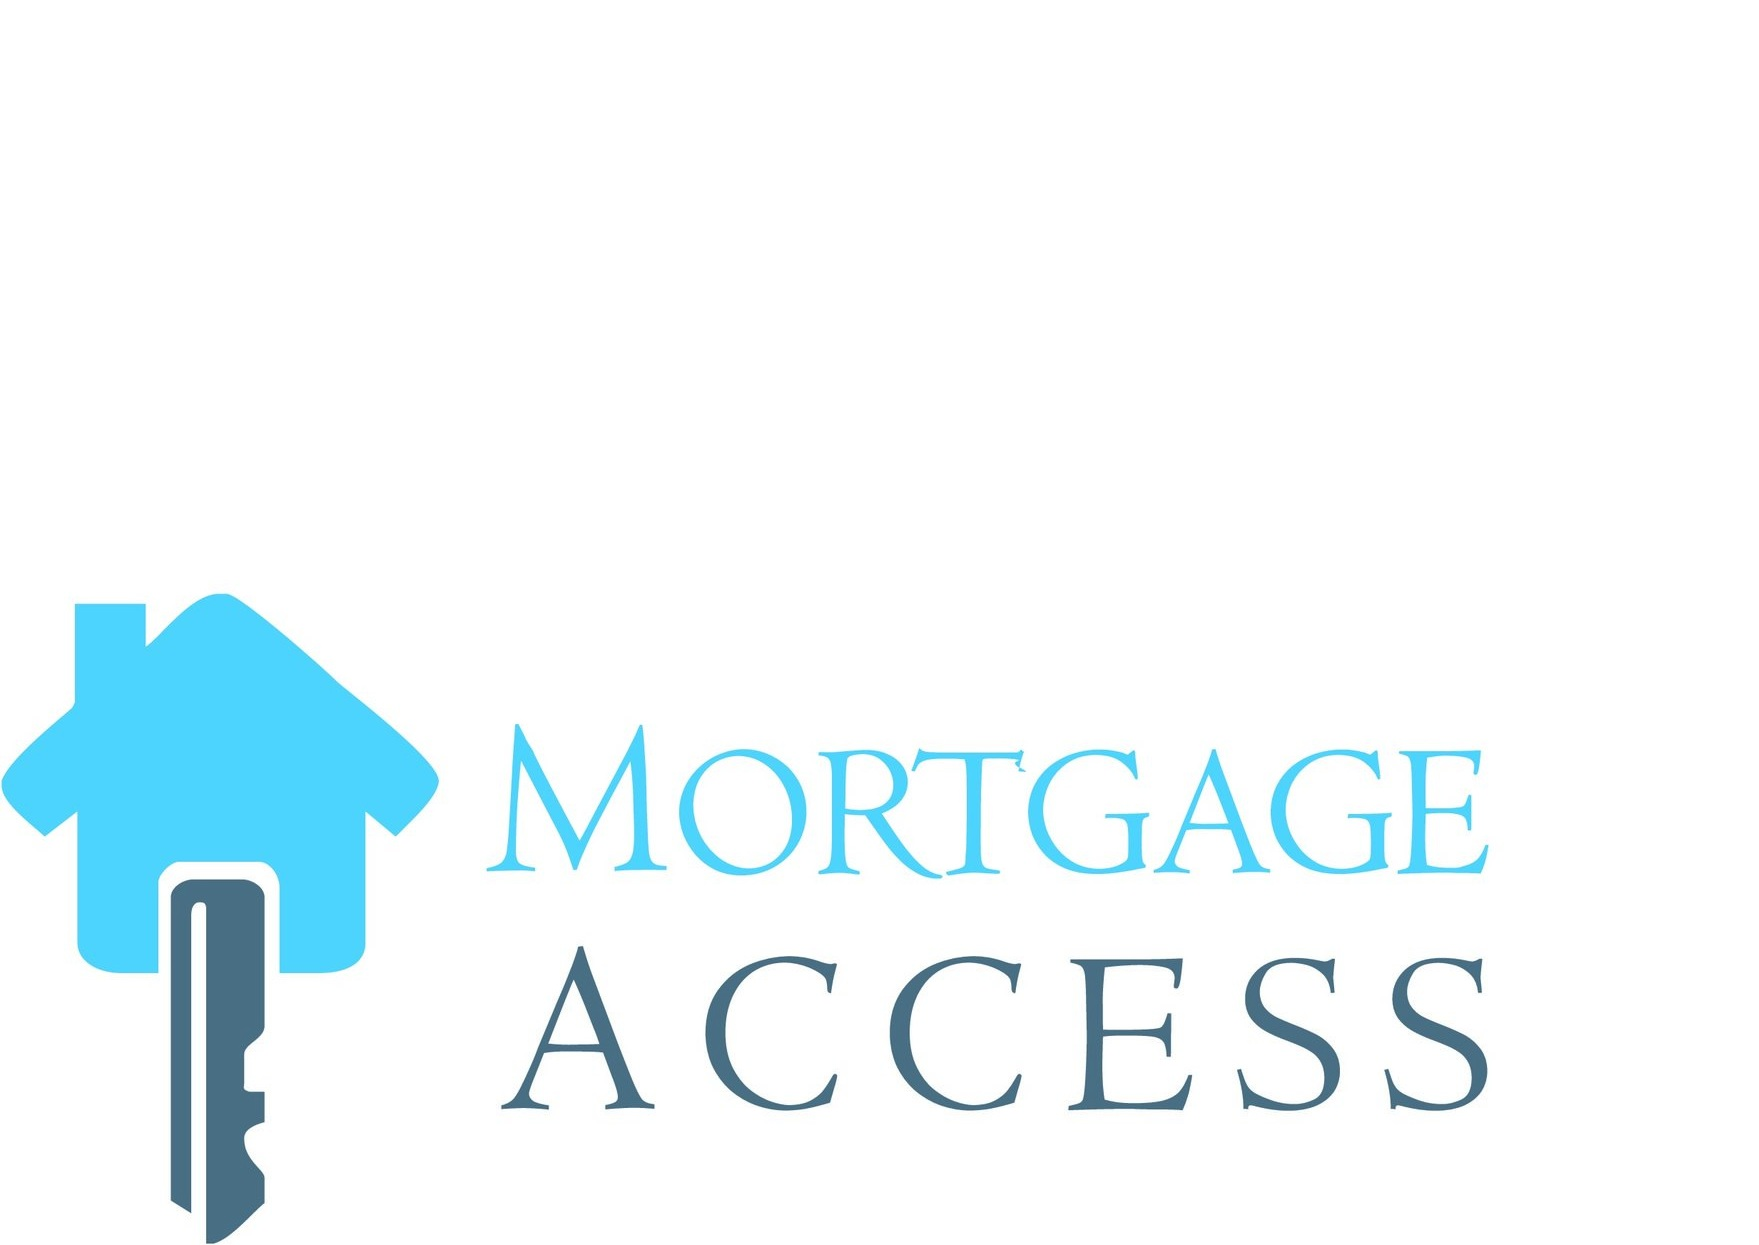 Mortgage_Access_LOGO.eps.jpg